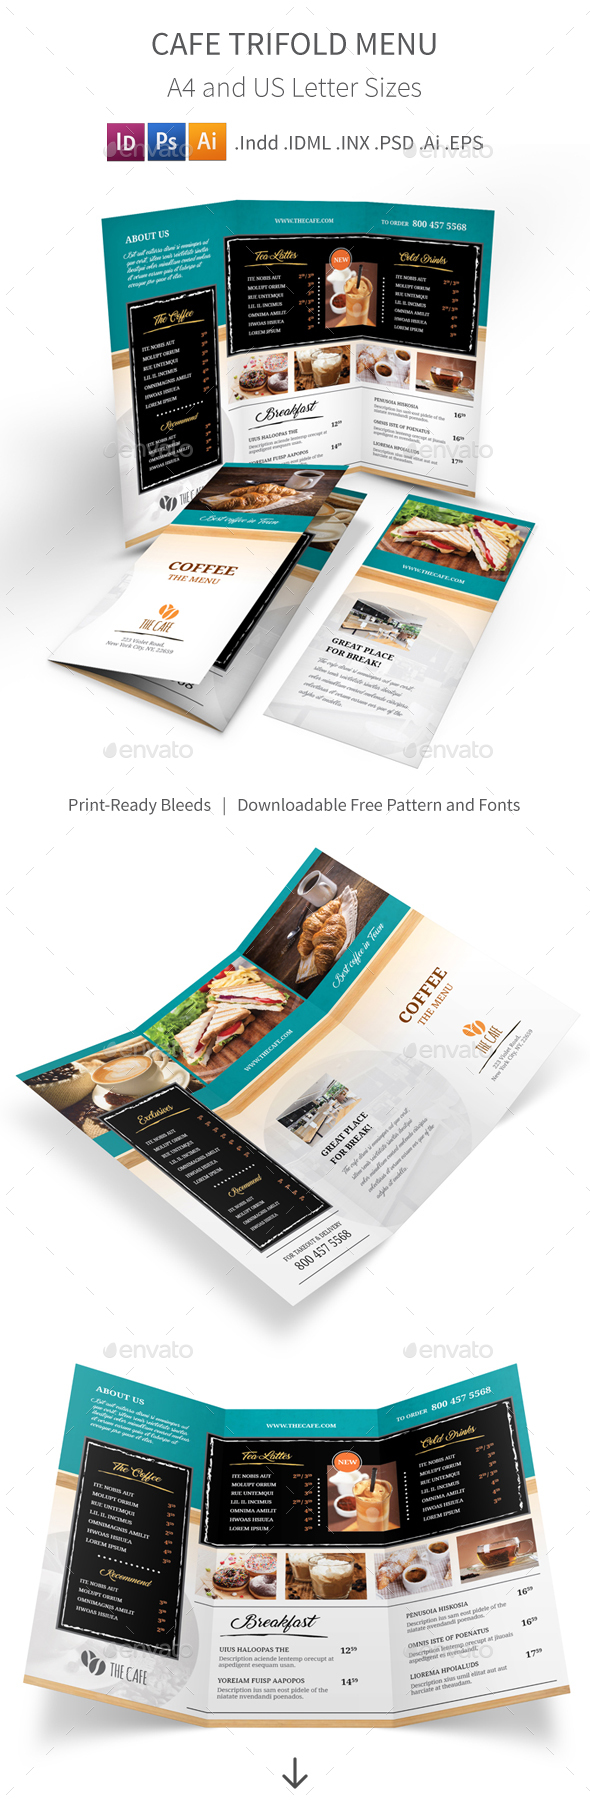 Cafe Trifold Menu 2